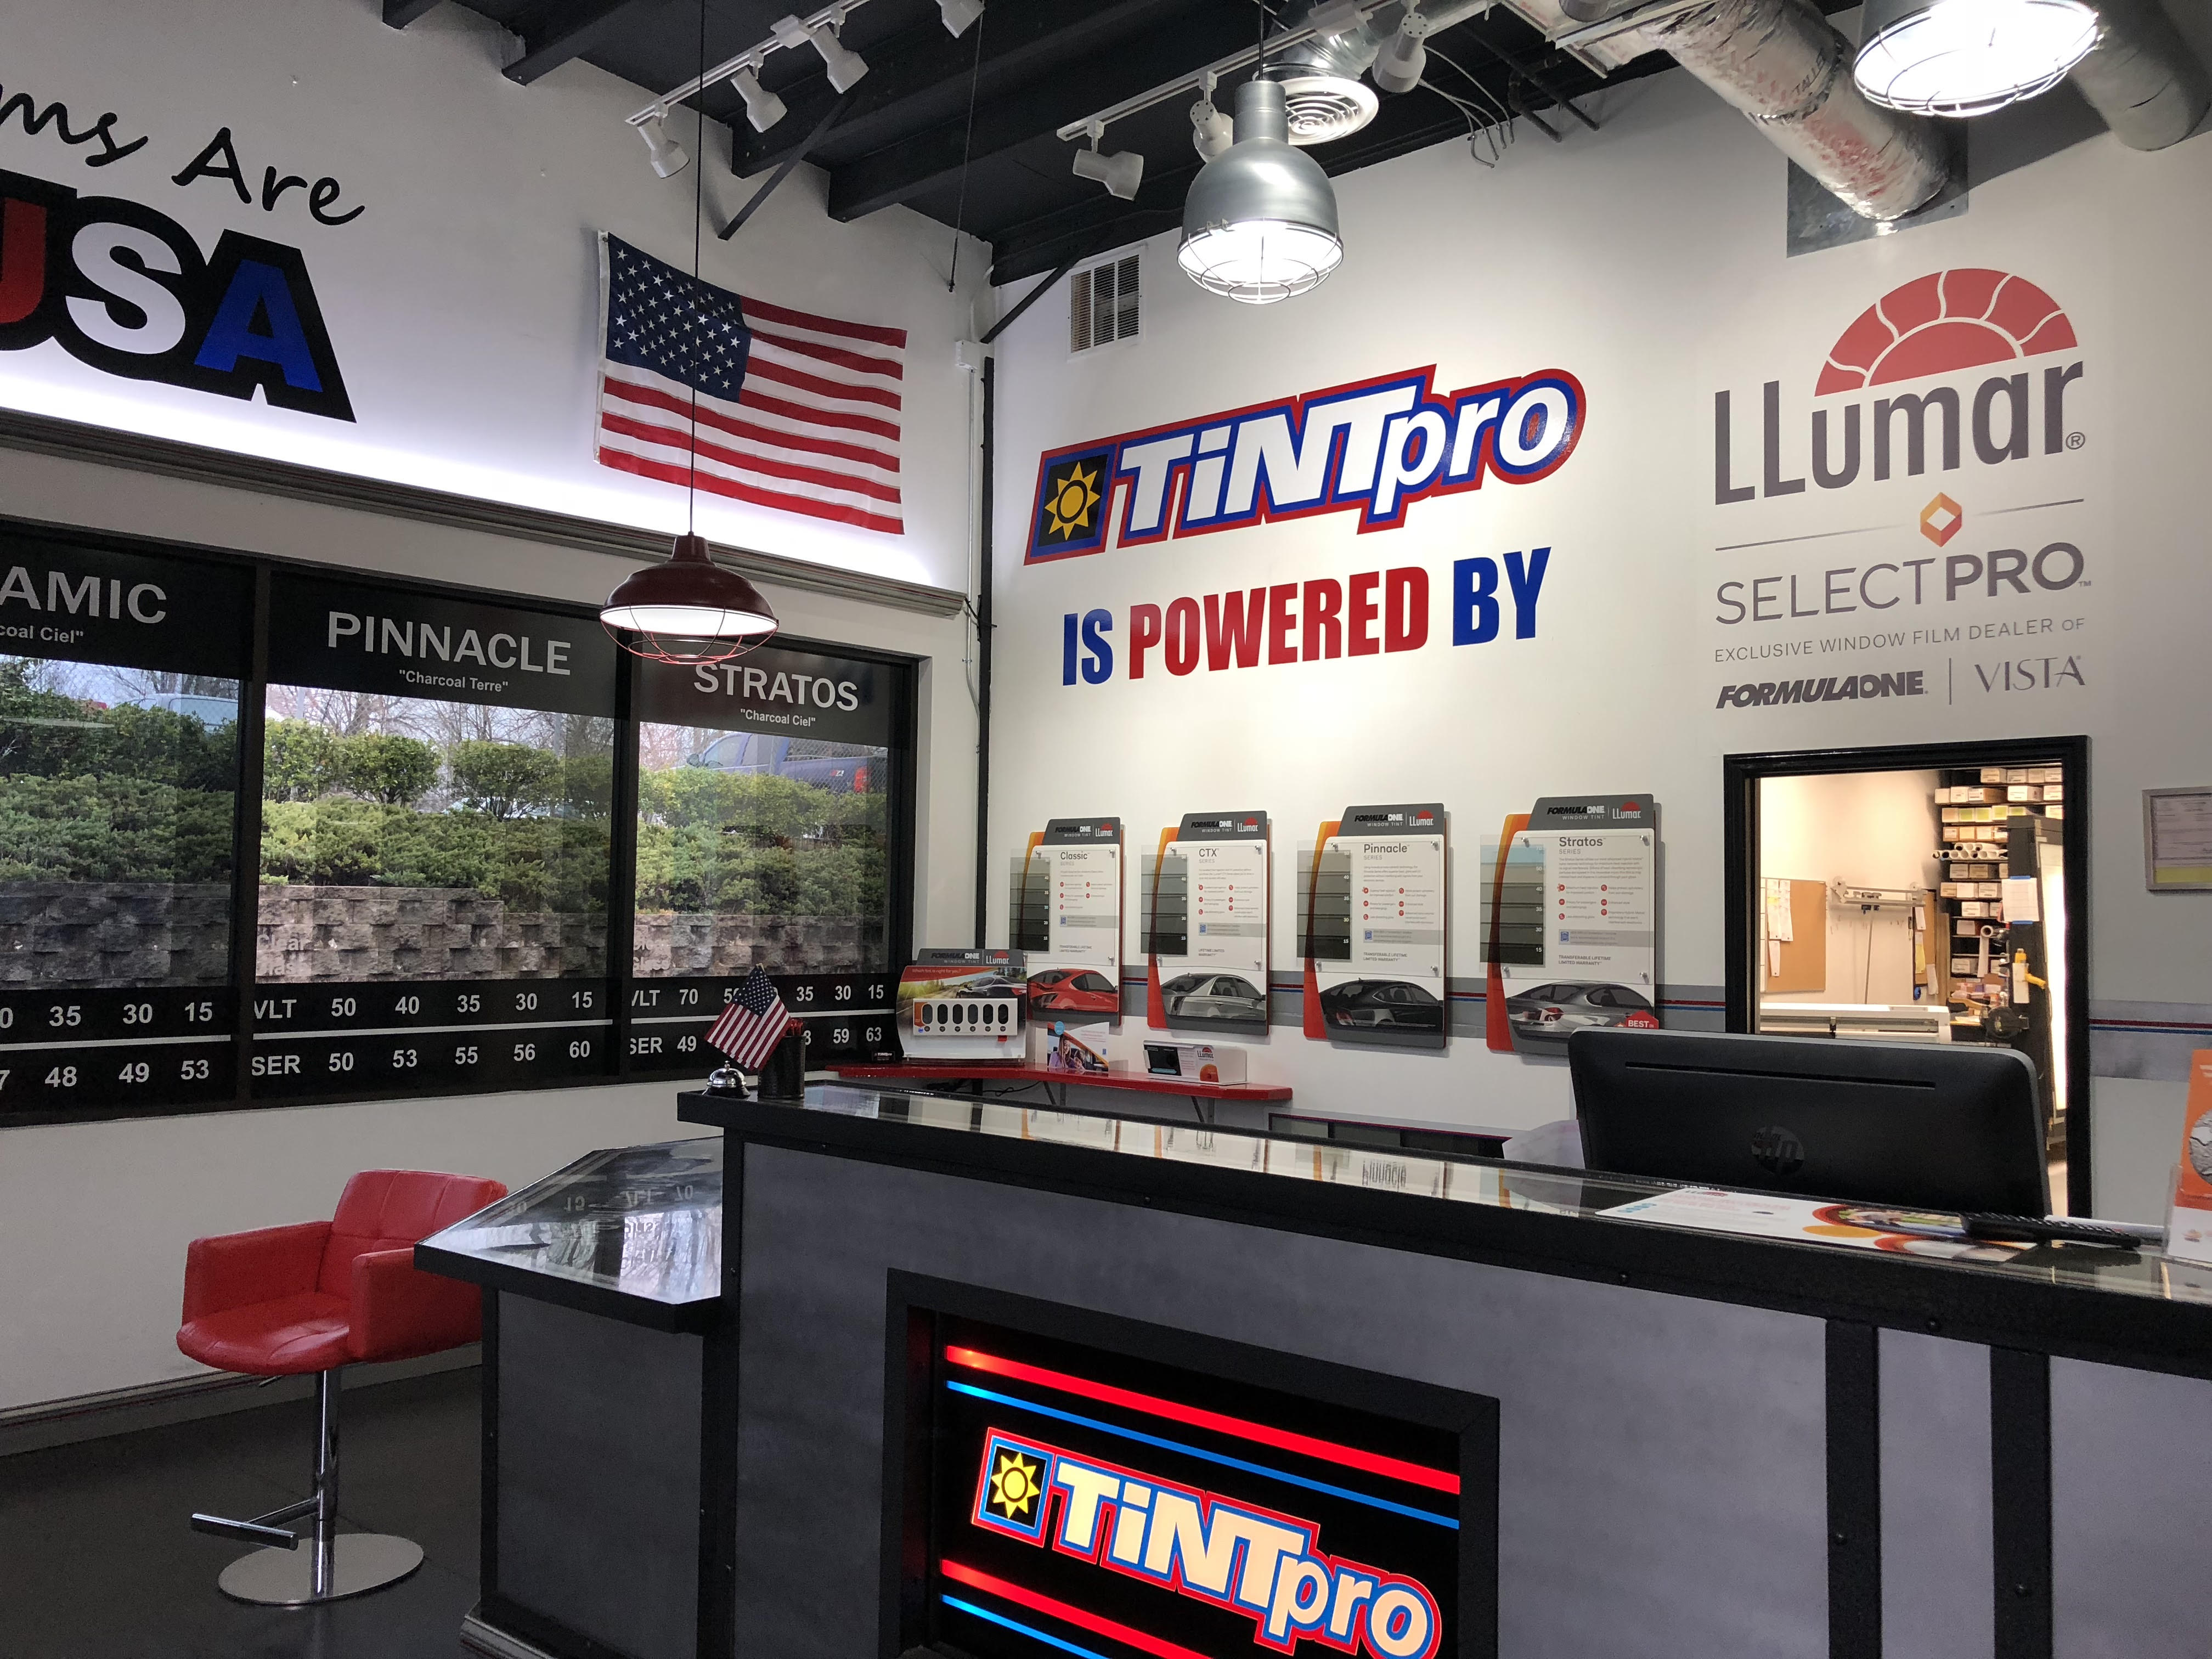 Tint-Pro: Shining a new light on window tints